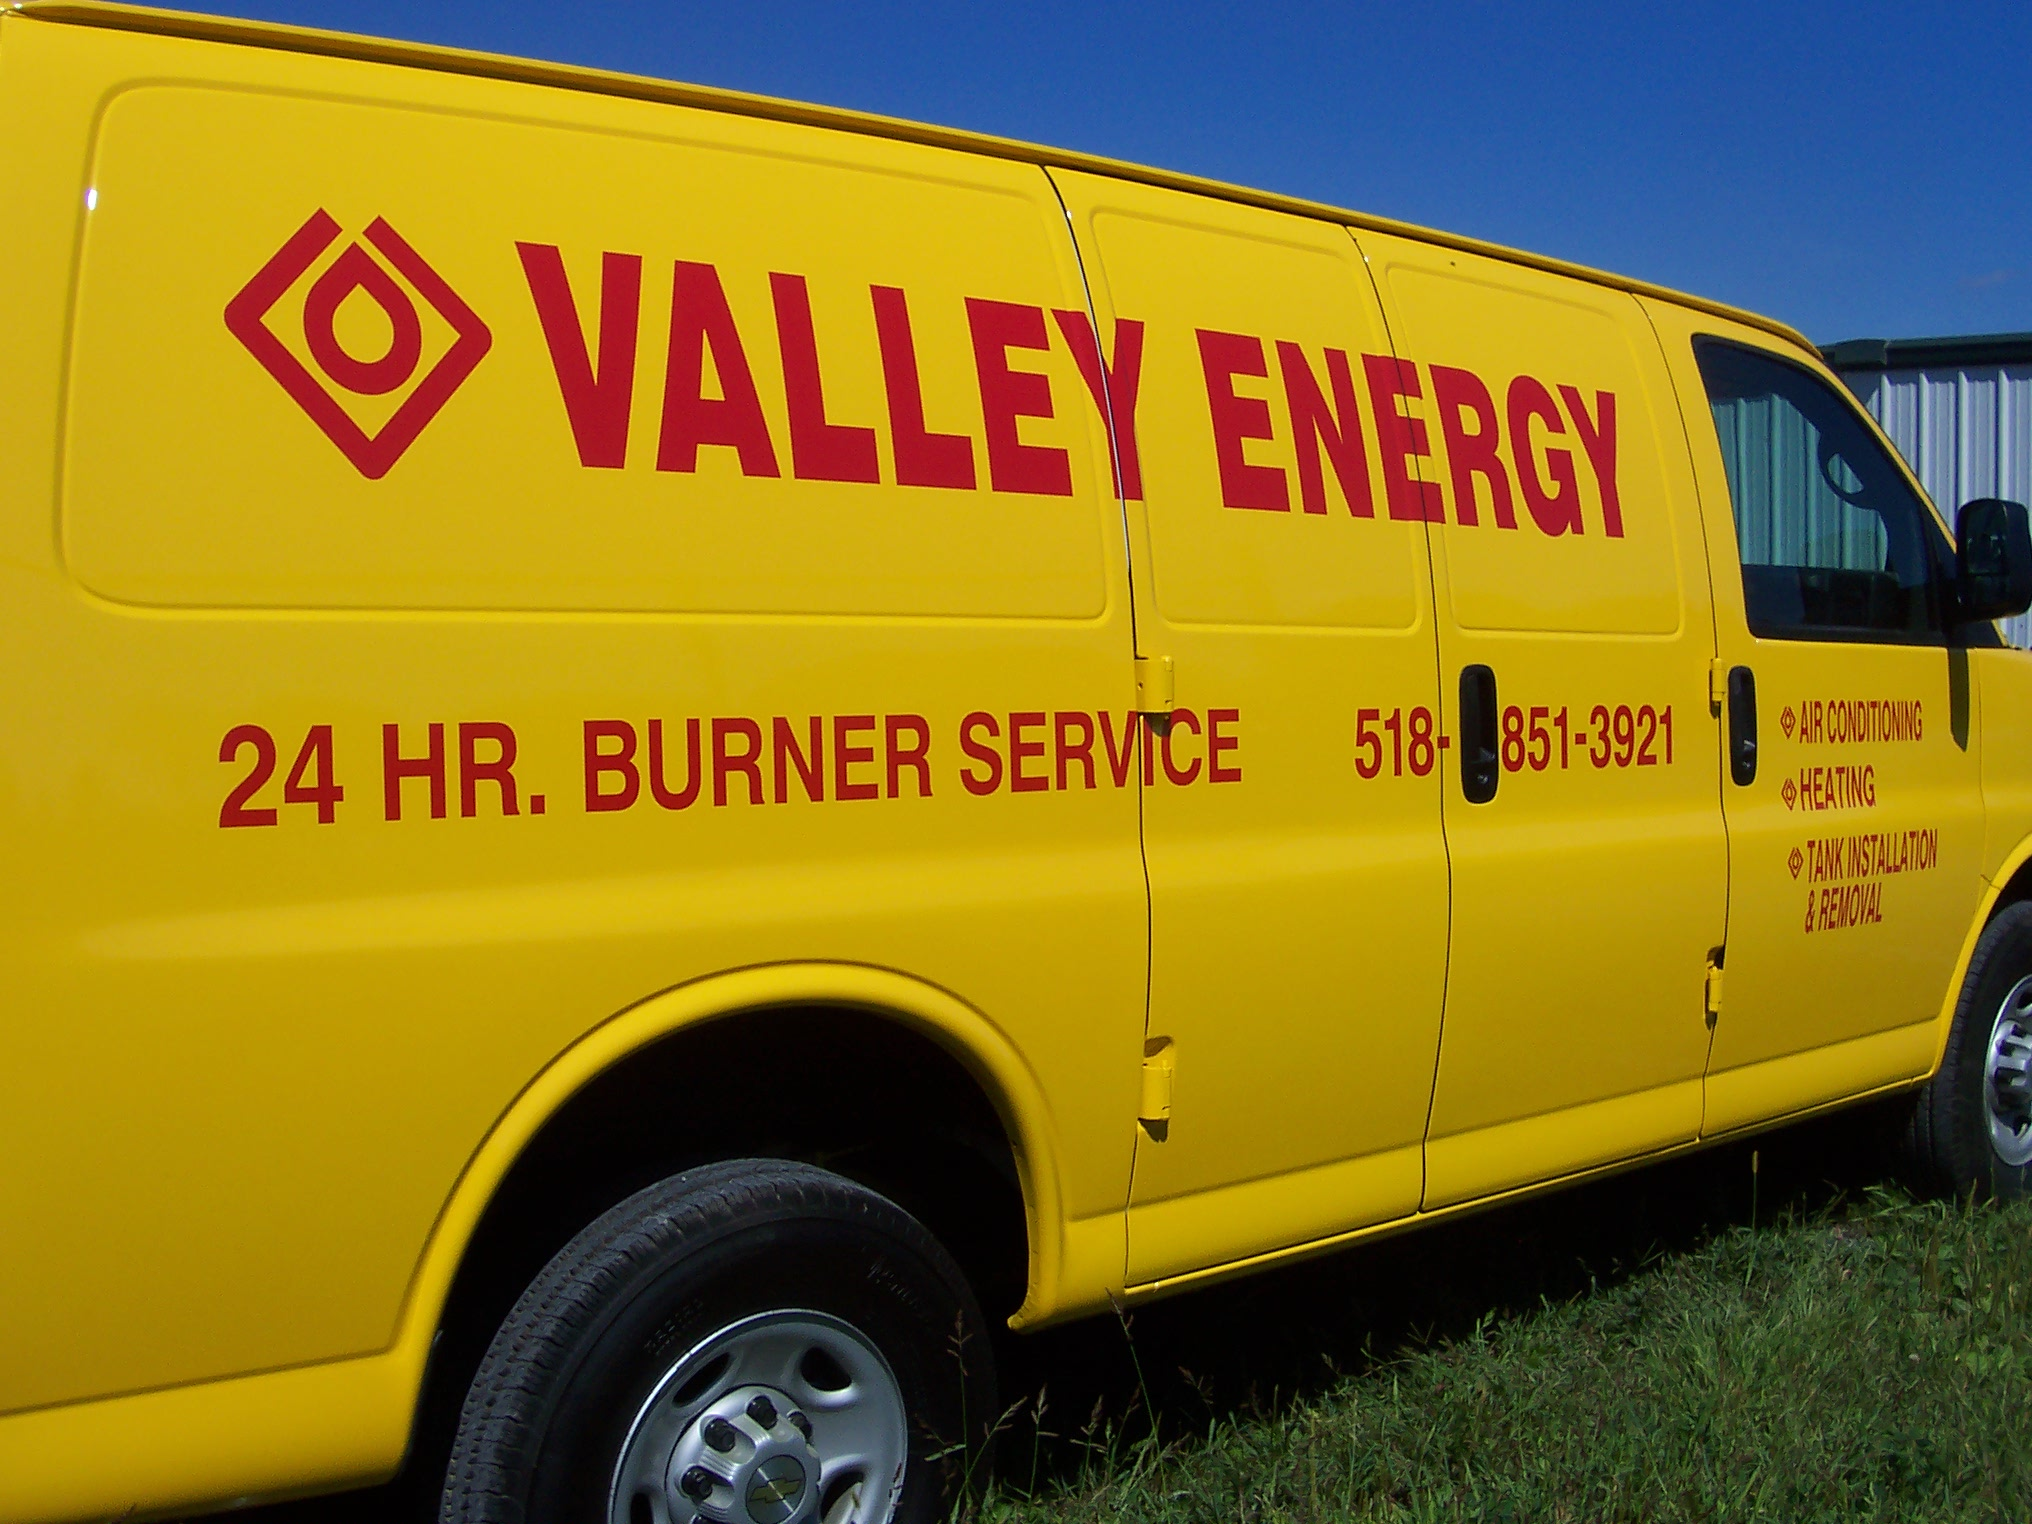 valley oil energy vans 008.jpg